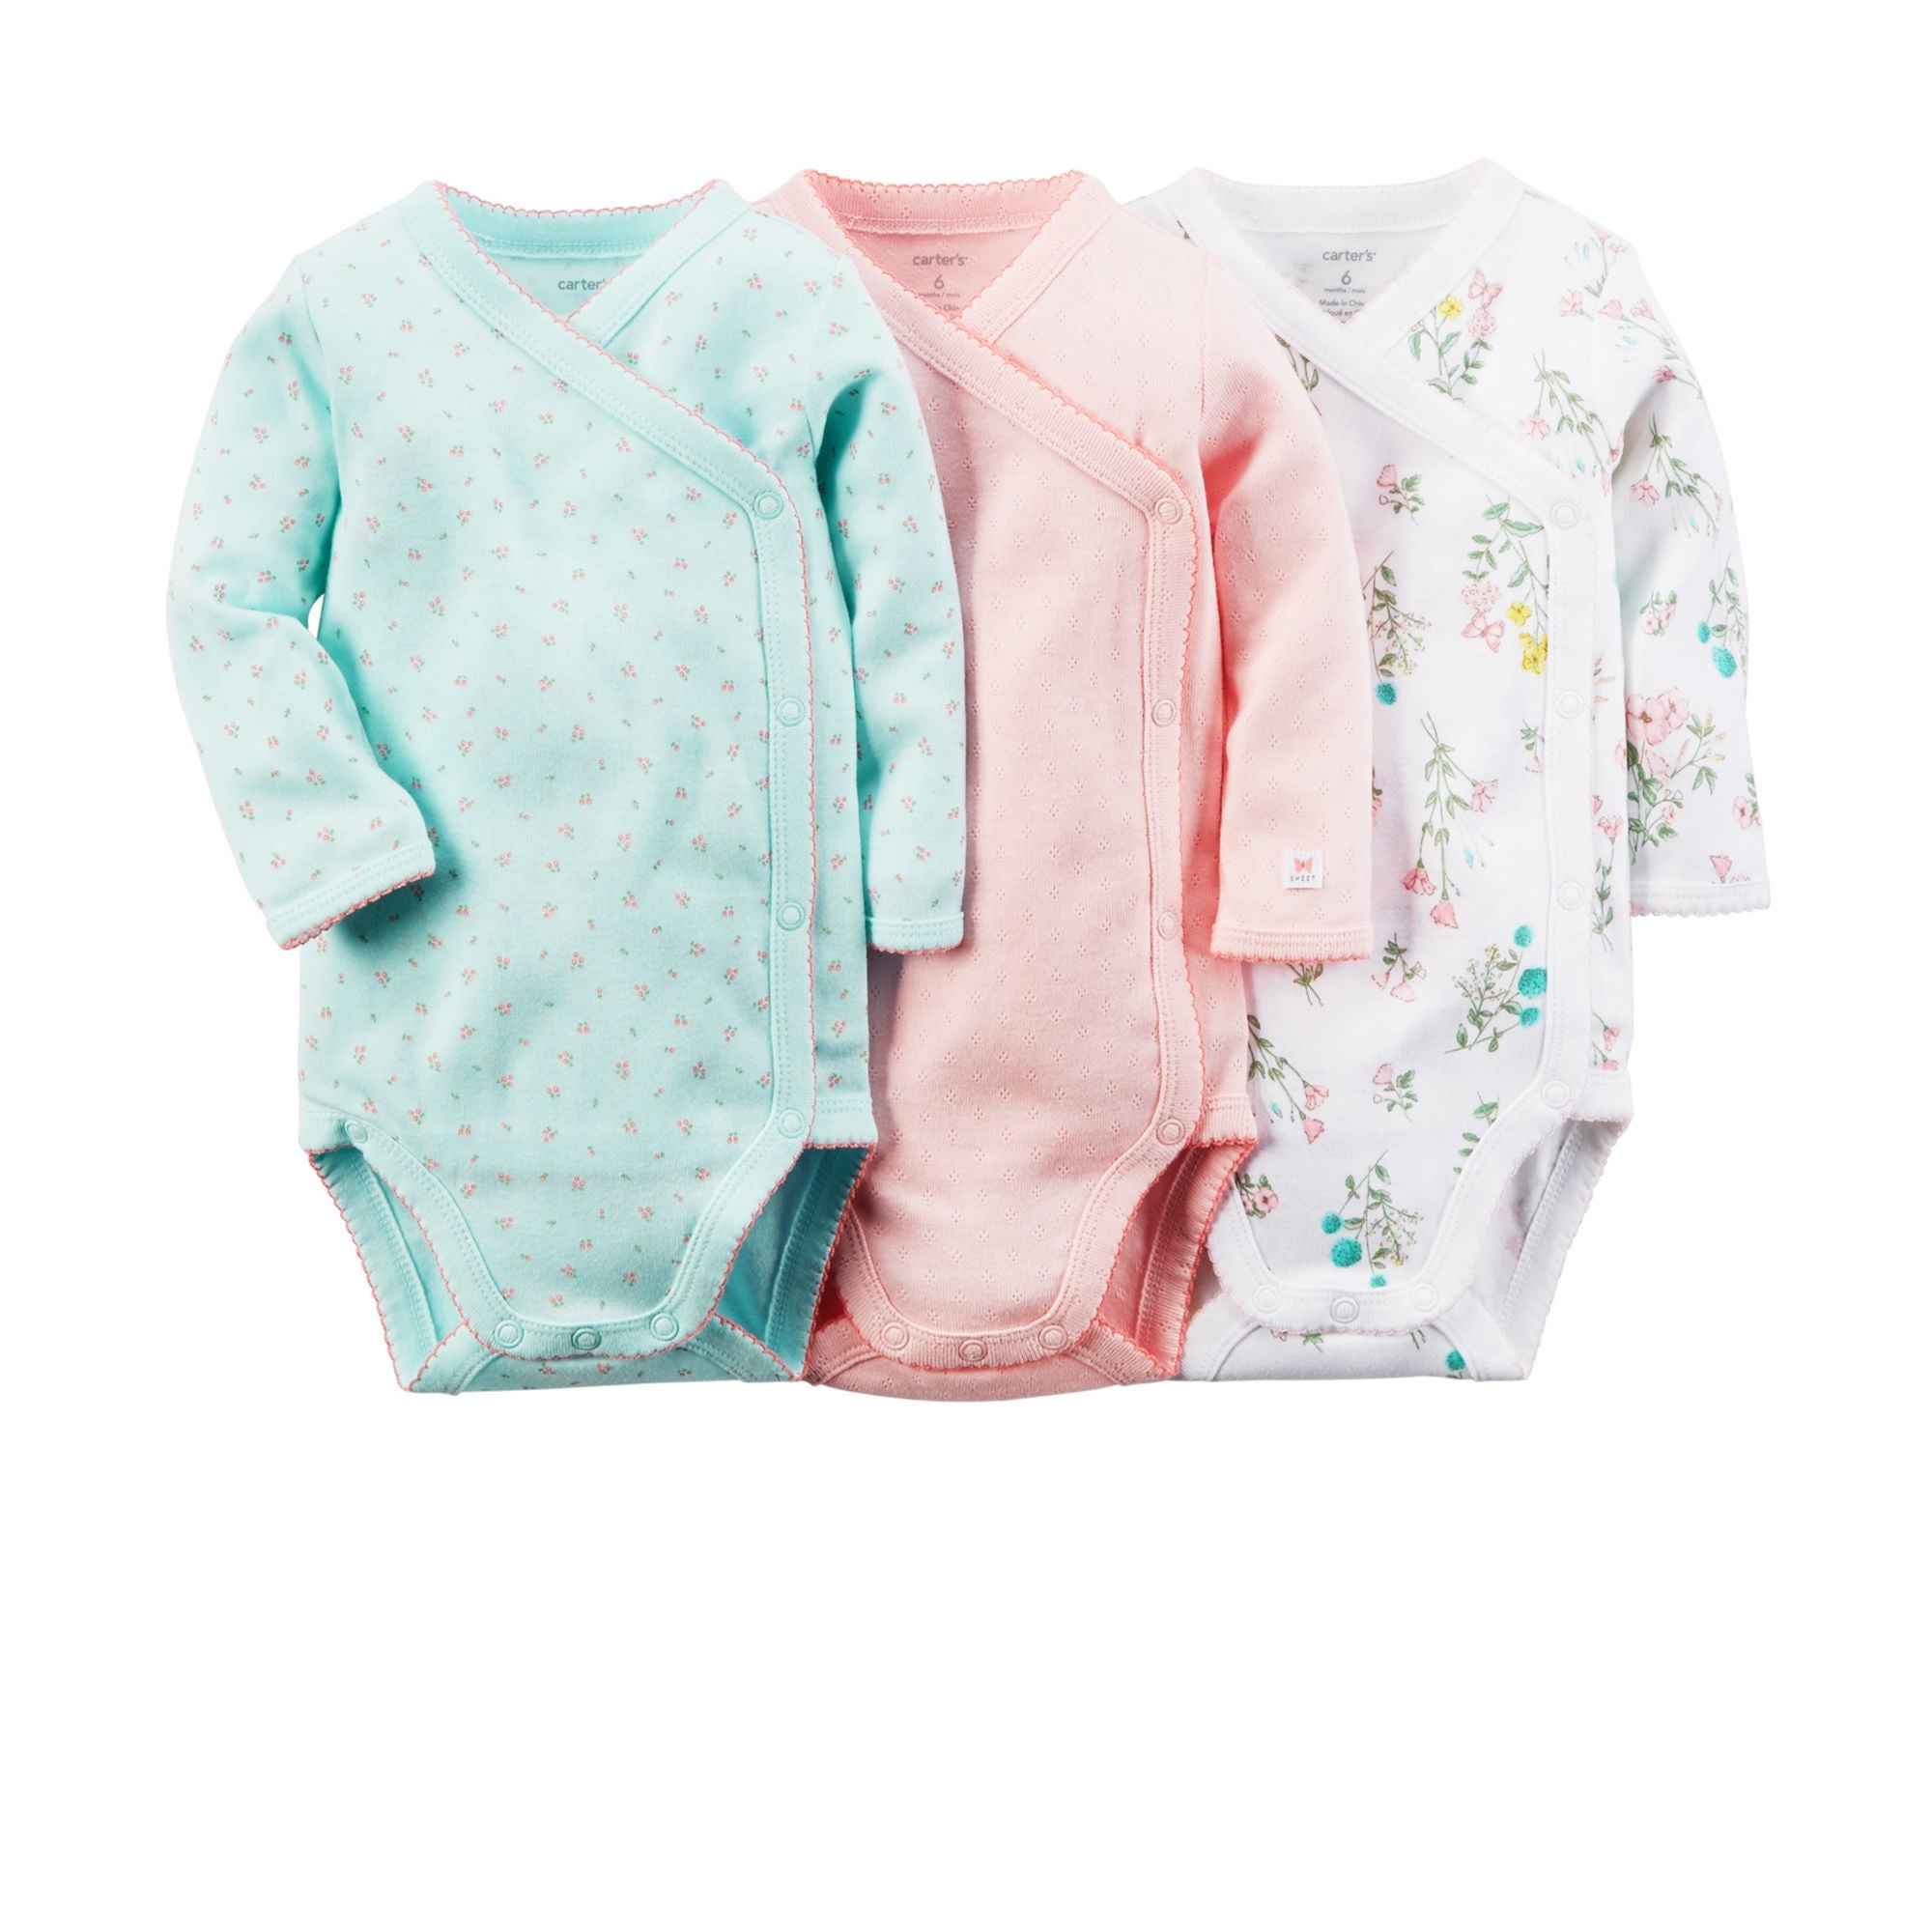 5137e9142 Shop Carter's Baby Girls' 3 Pack Side Snap Bodysuits (Baby) - Floral - 9  Months - Free Shipping On Orders Over $45 - Overstock - 17633423